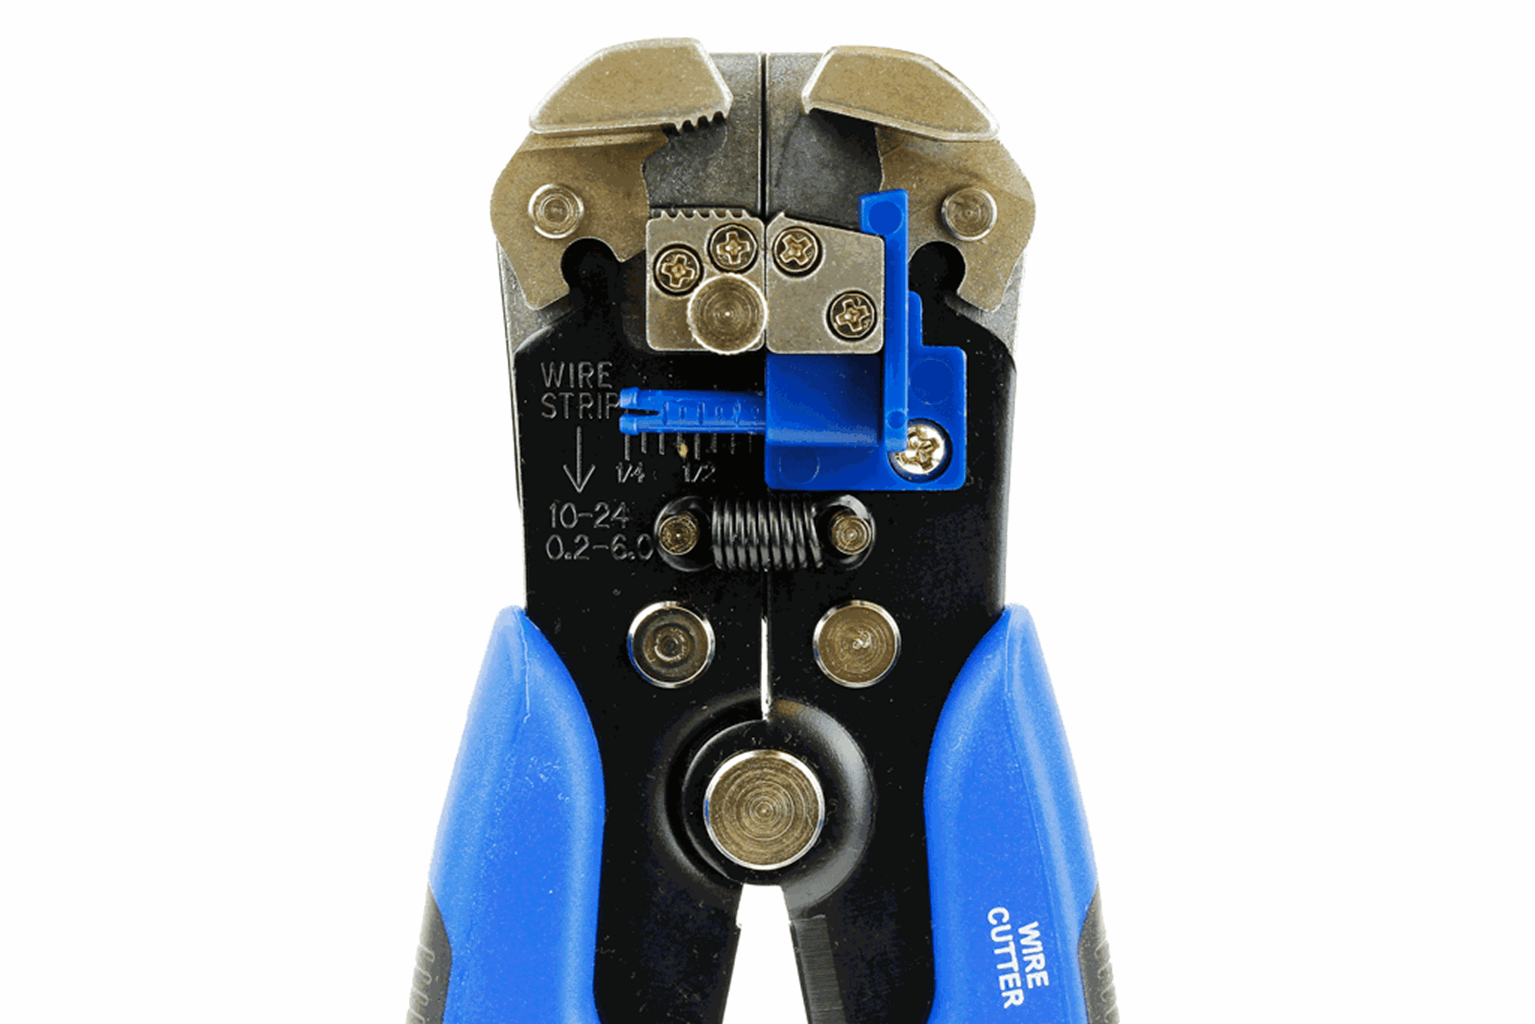 High Quality Power Bus Wire Stripper